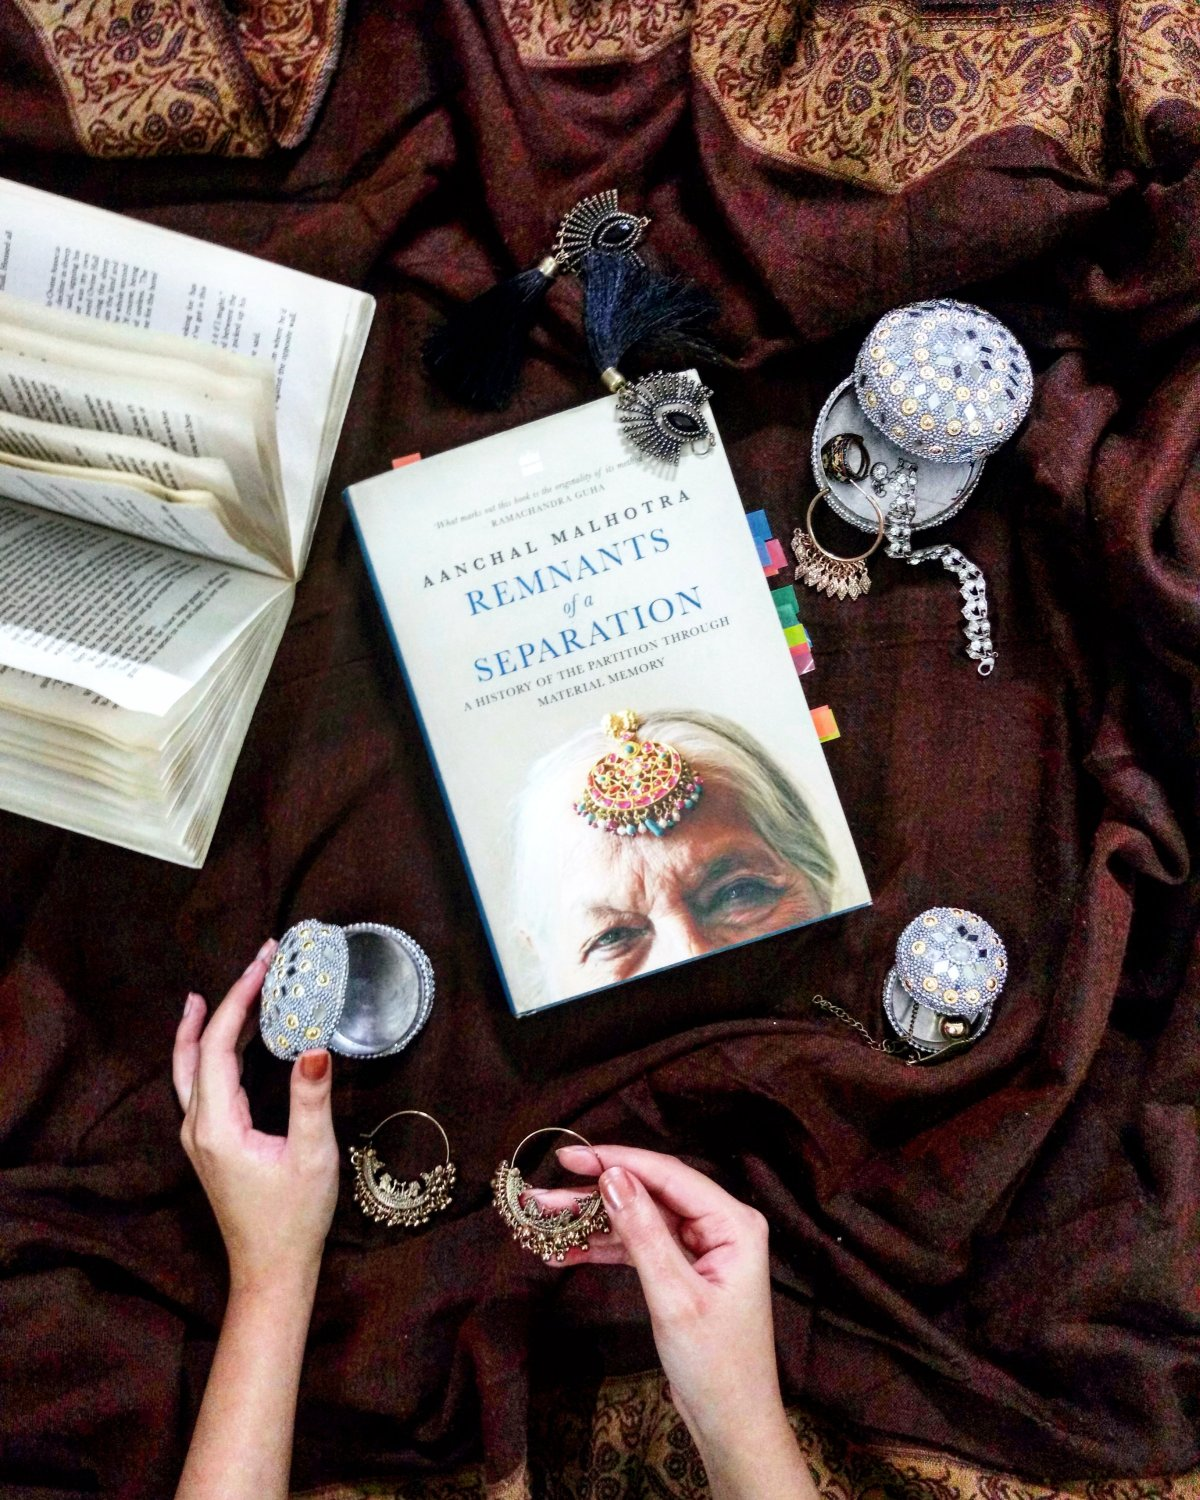 Remnants of a Separation by Aanchal Malhotra: If you could read just one book, let it be thisone.